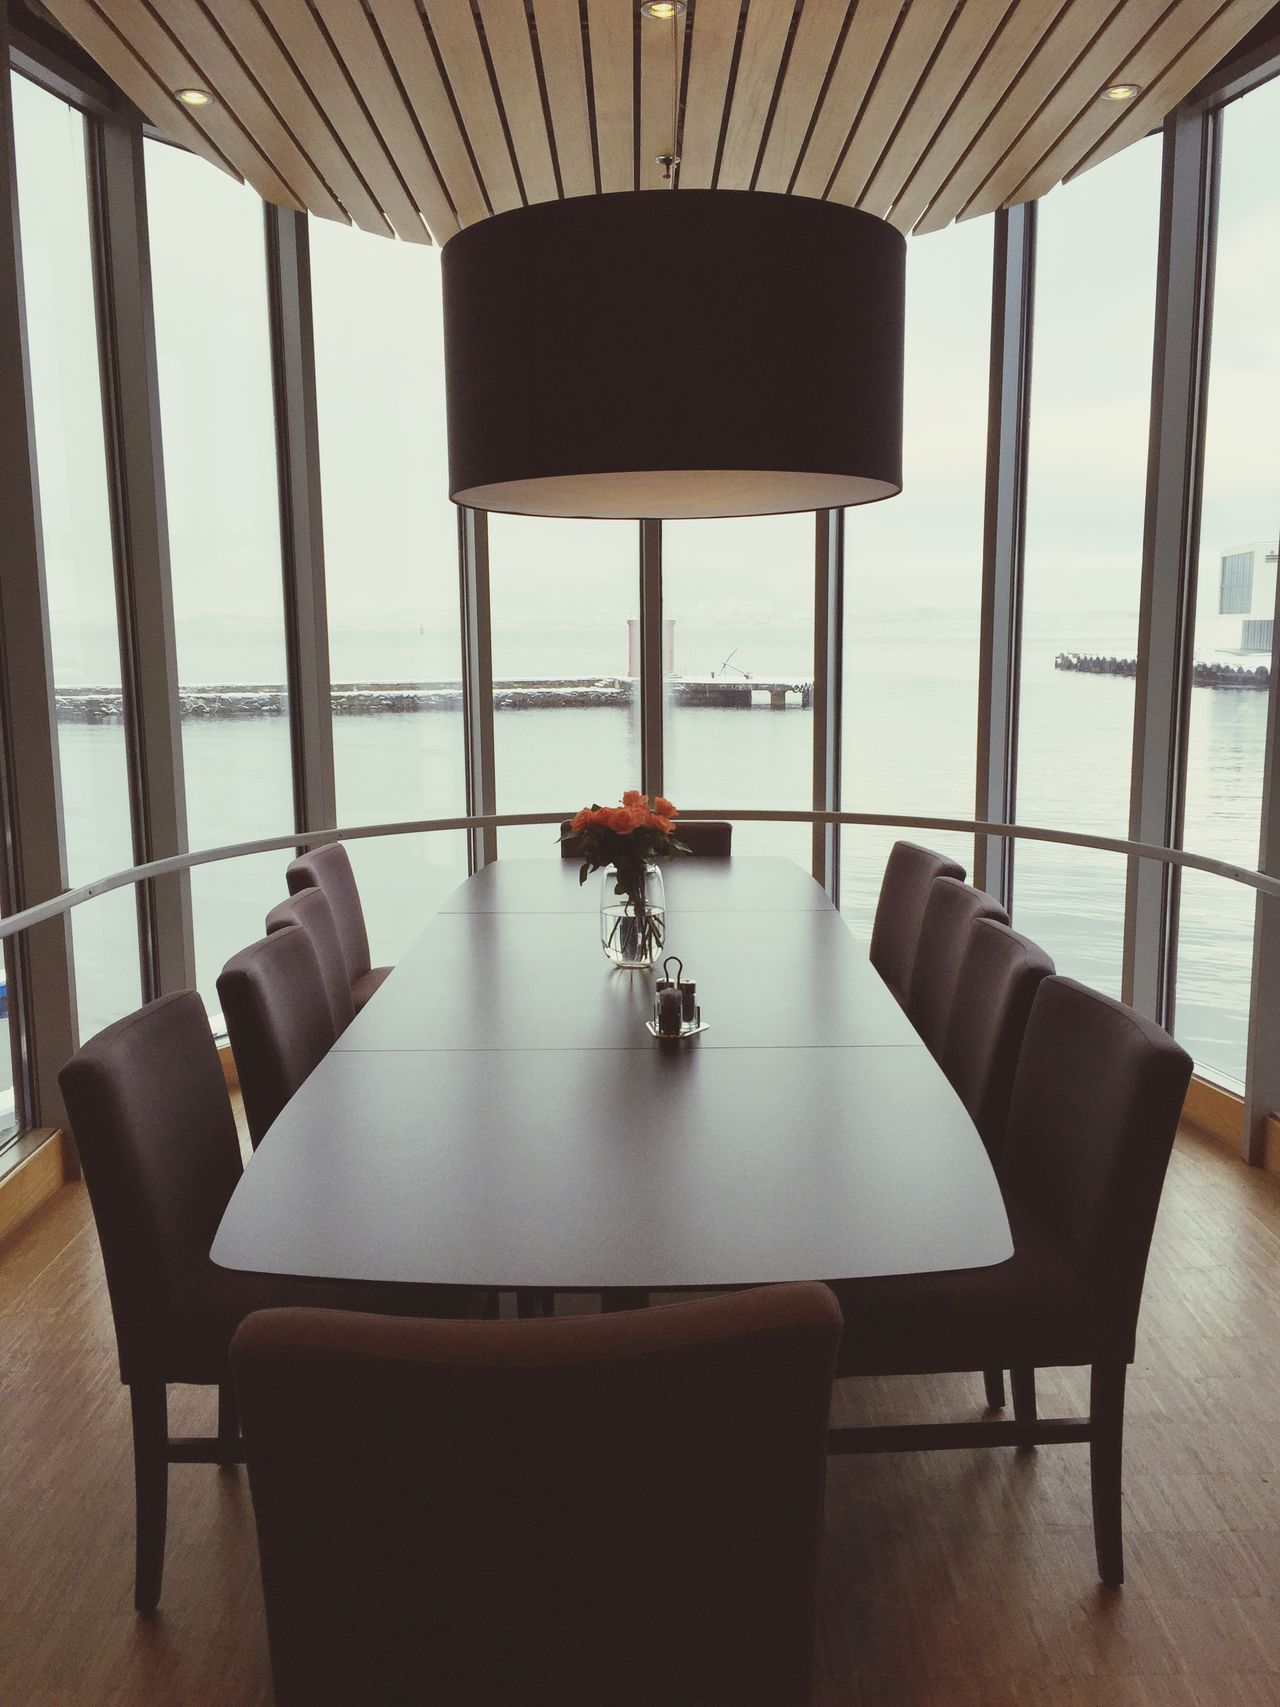 Interior Views Lounge Bigwindow Longtable Harbour View Scandinavian Design Hotel Lounge